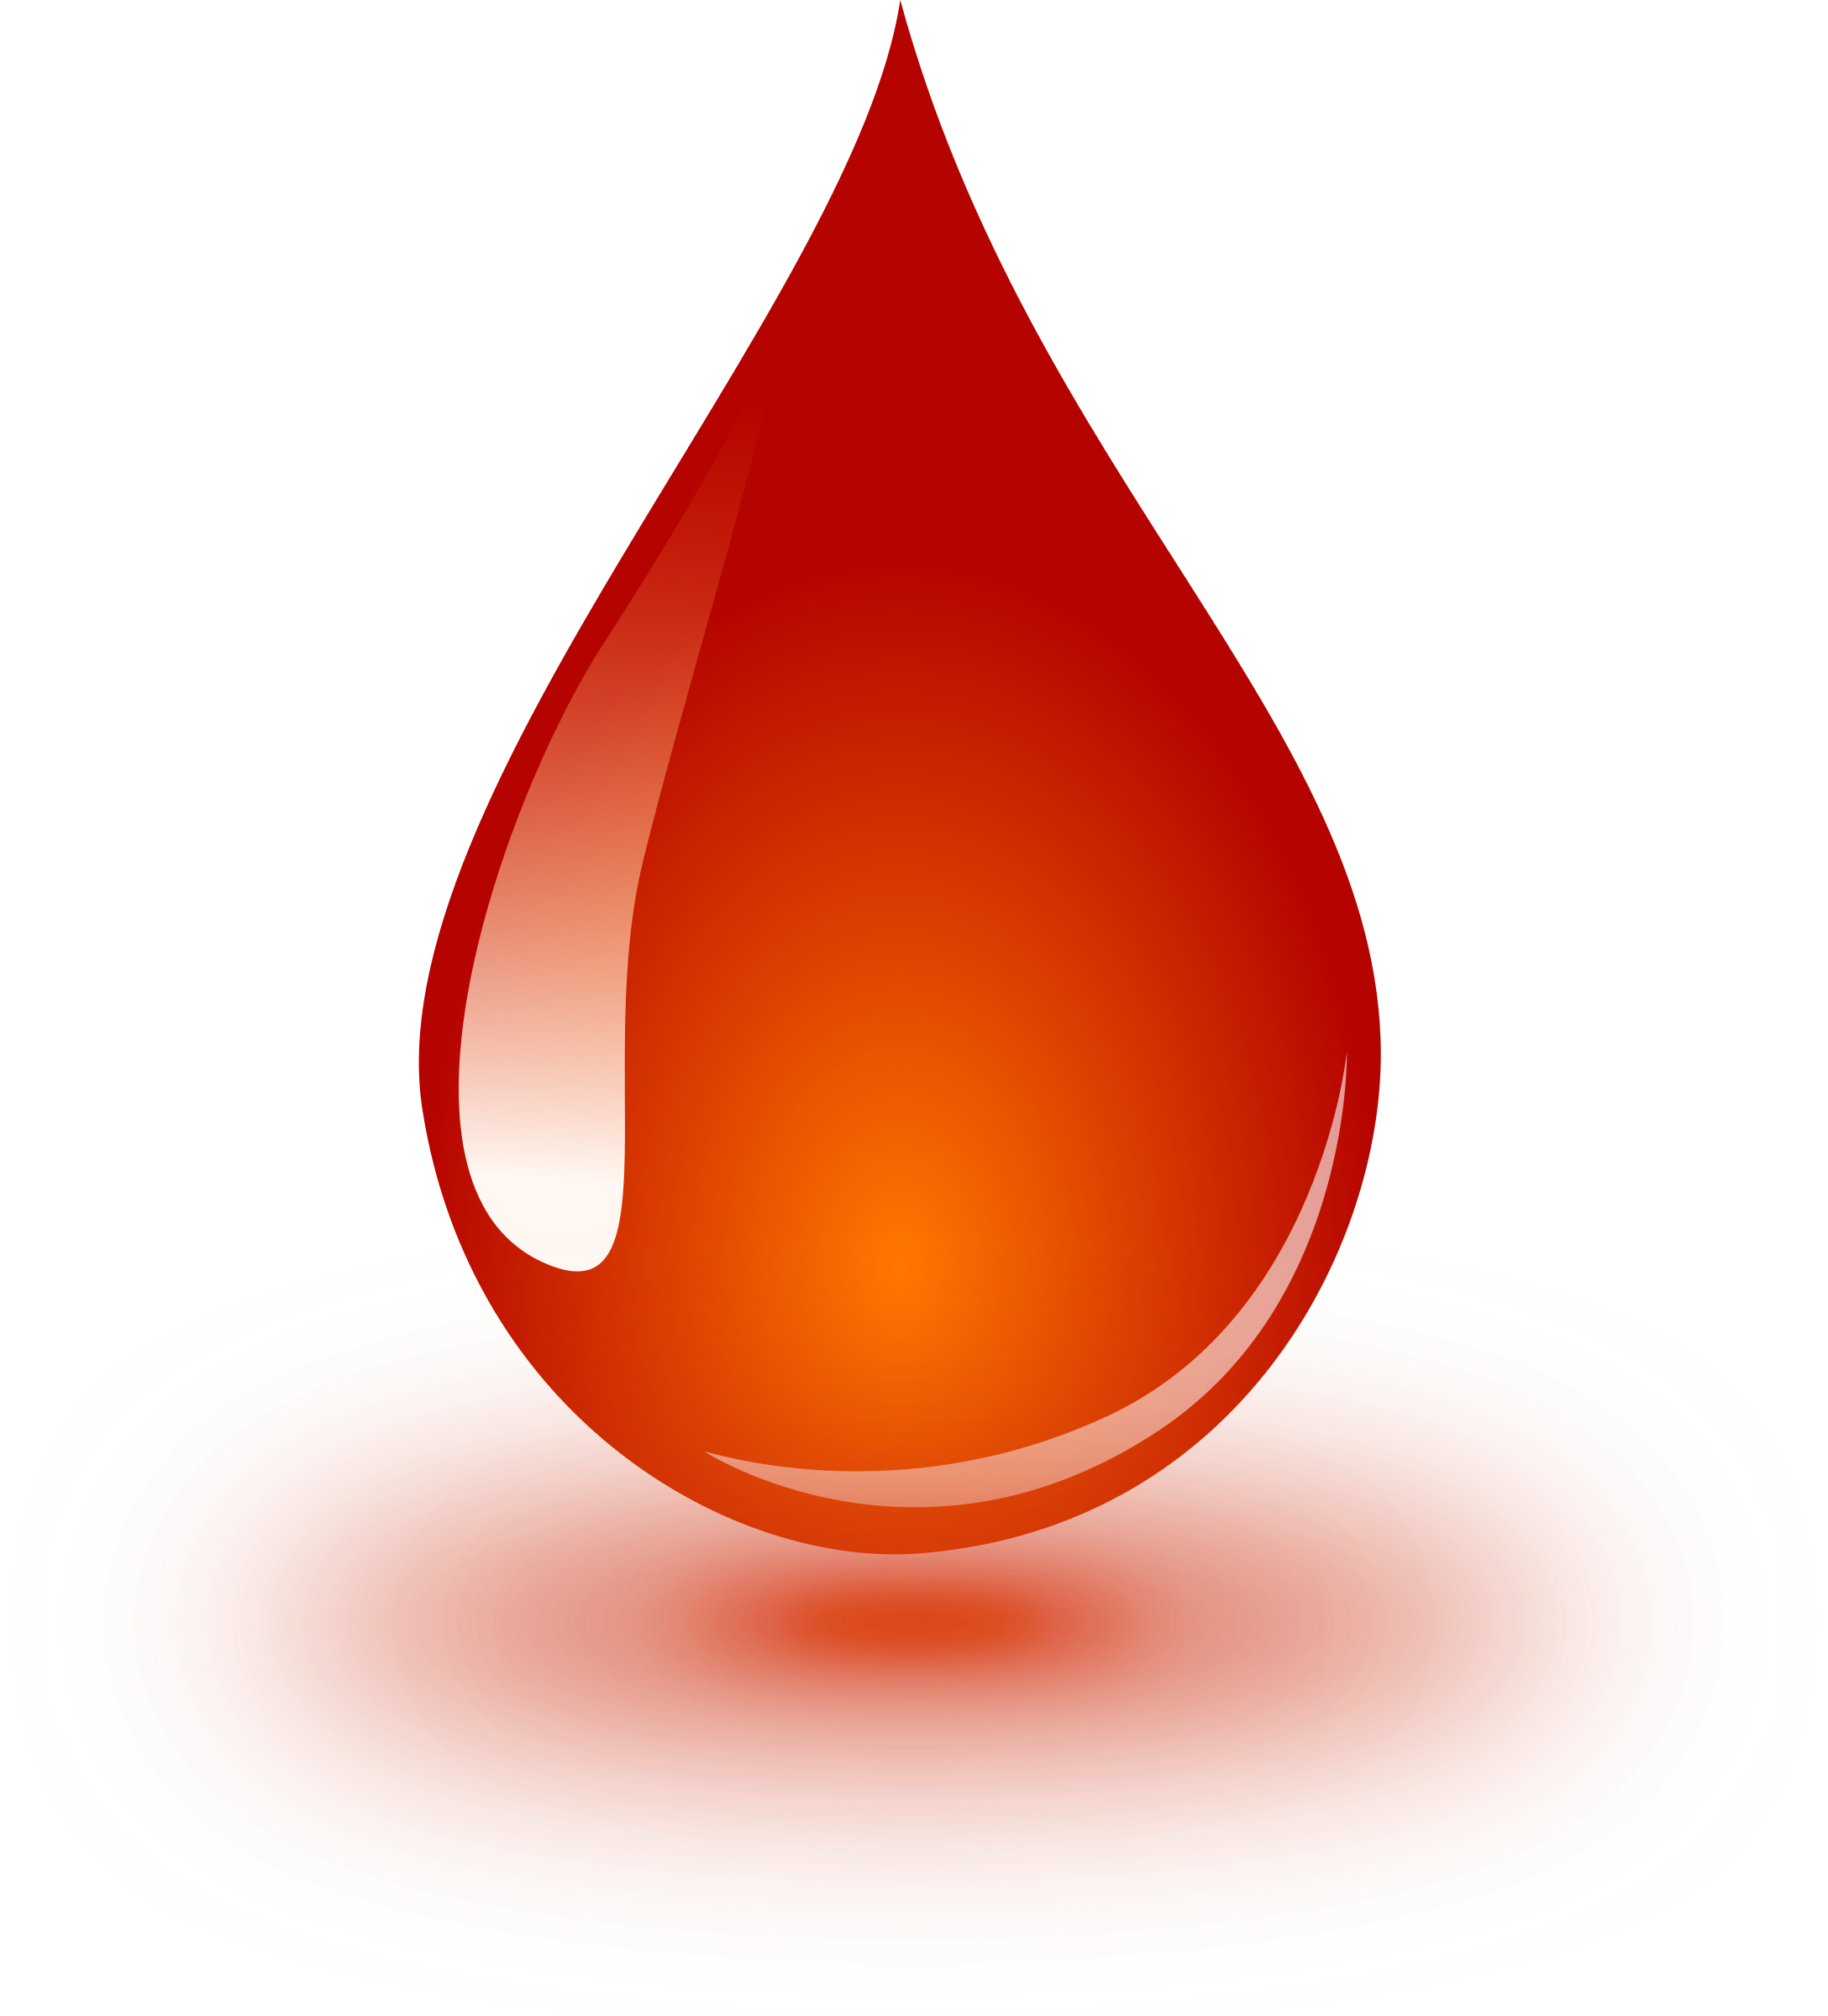 clipart picture of blood - photo #36